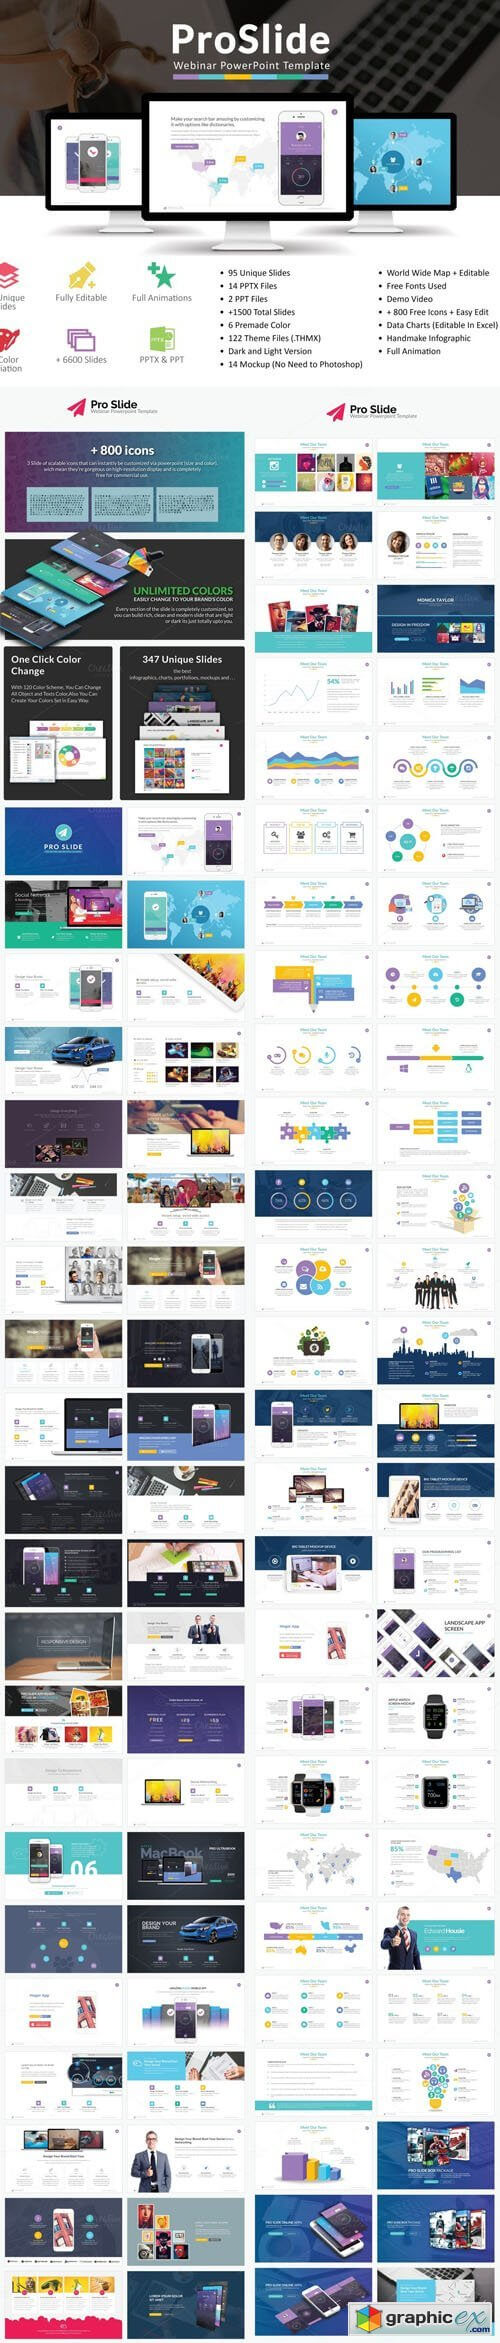 Proslide Webinar Powerpoint Template » Free Download Vector With Webinar Powerpoint Templates